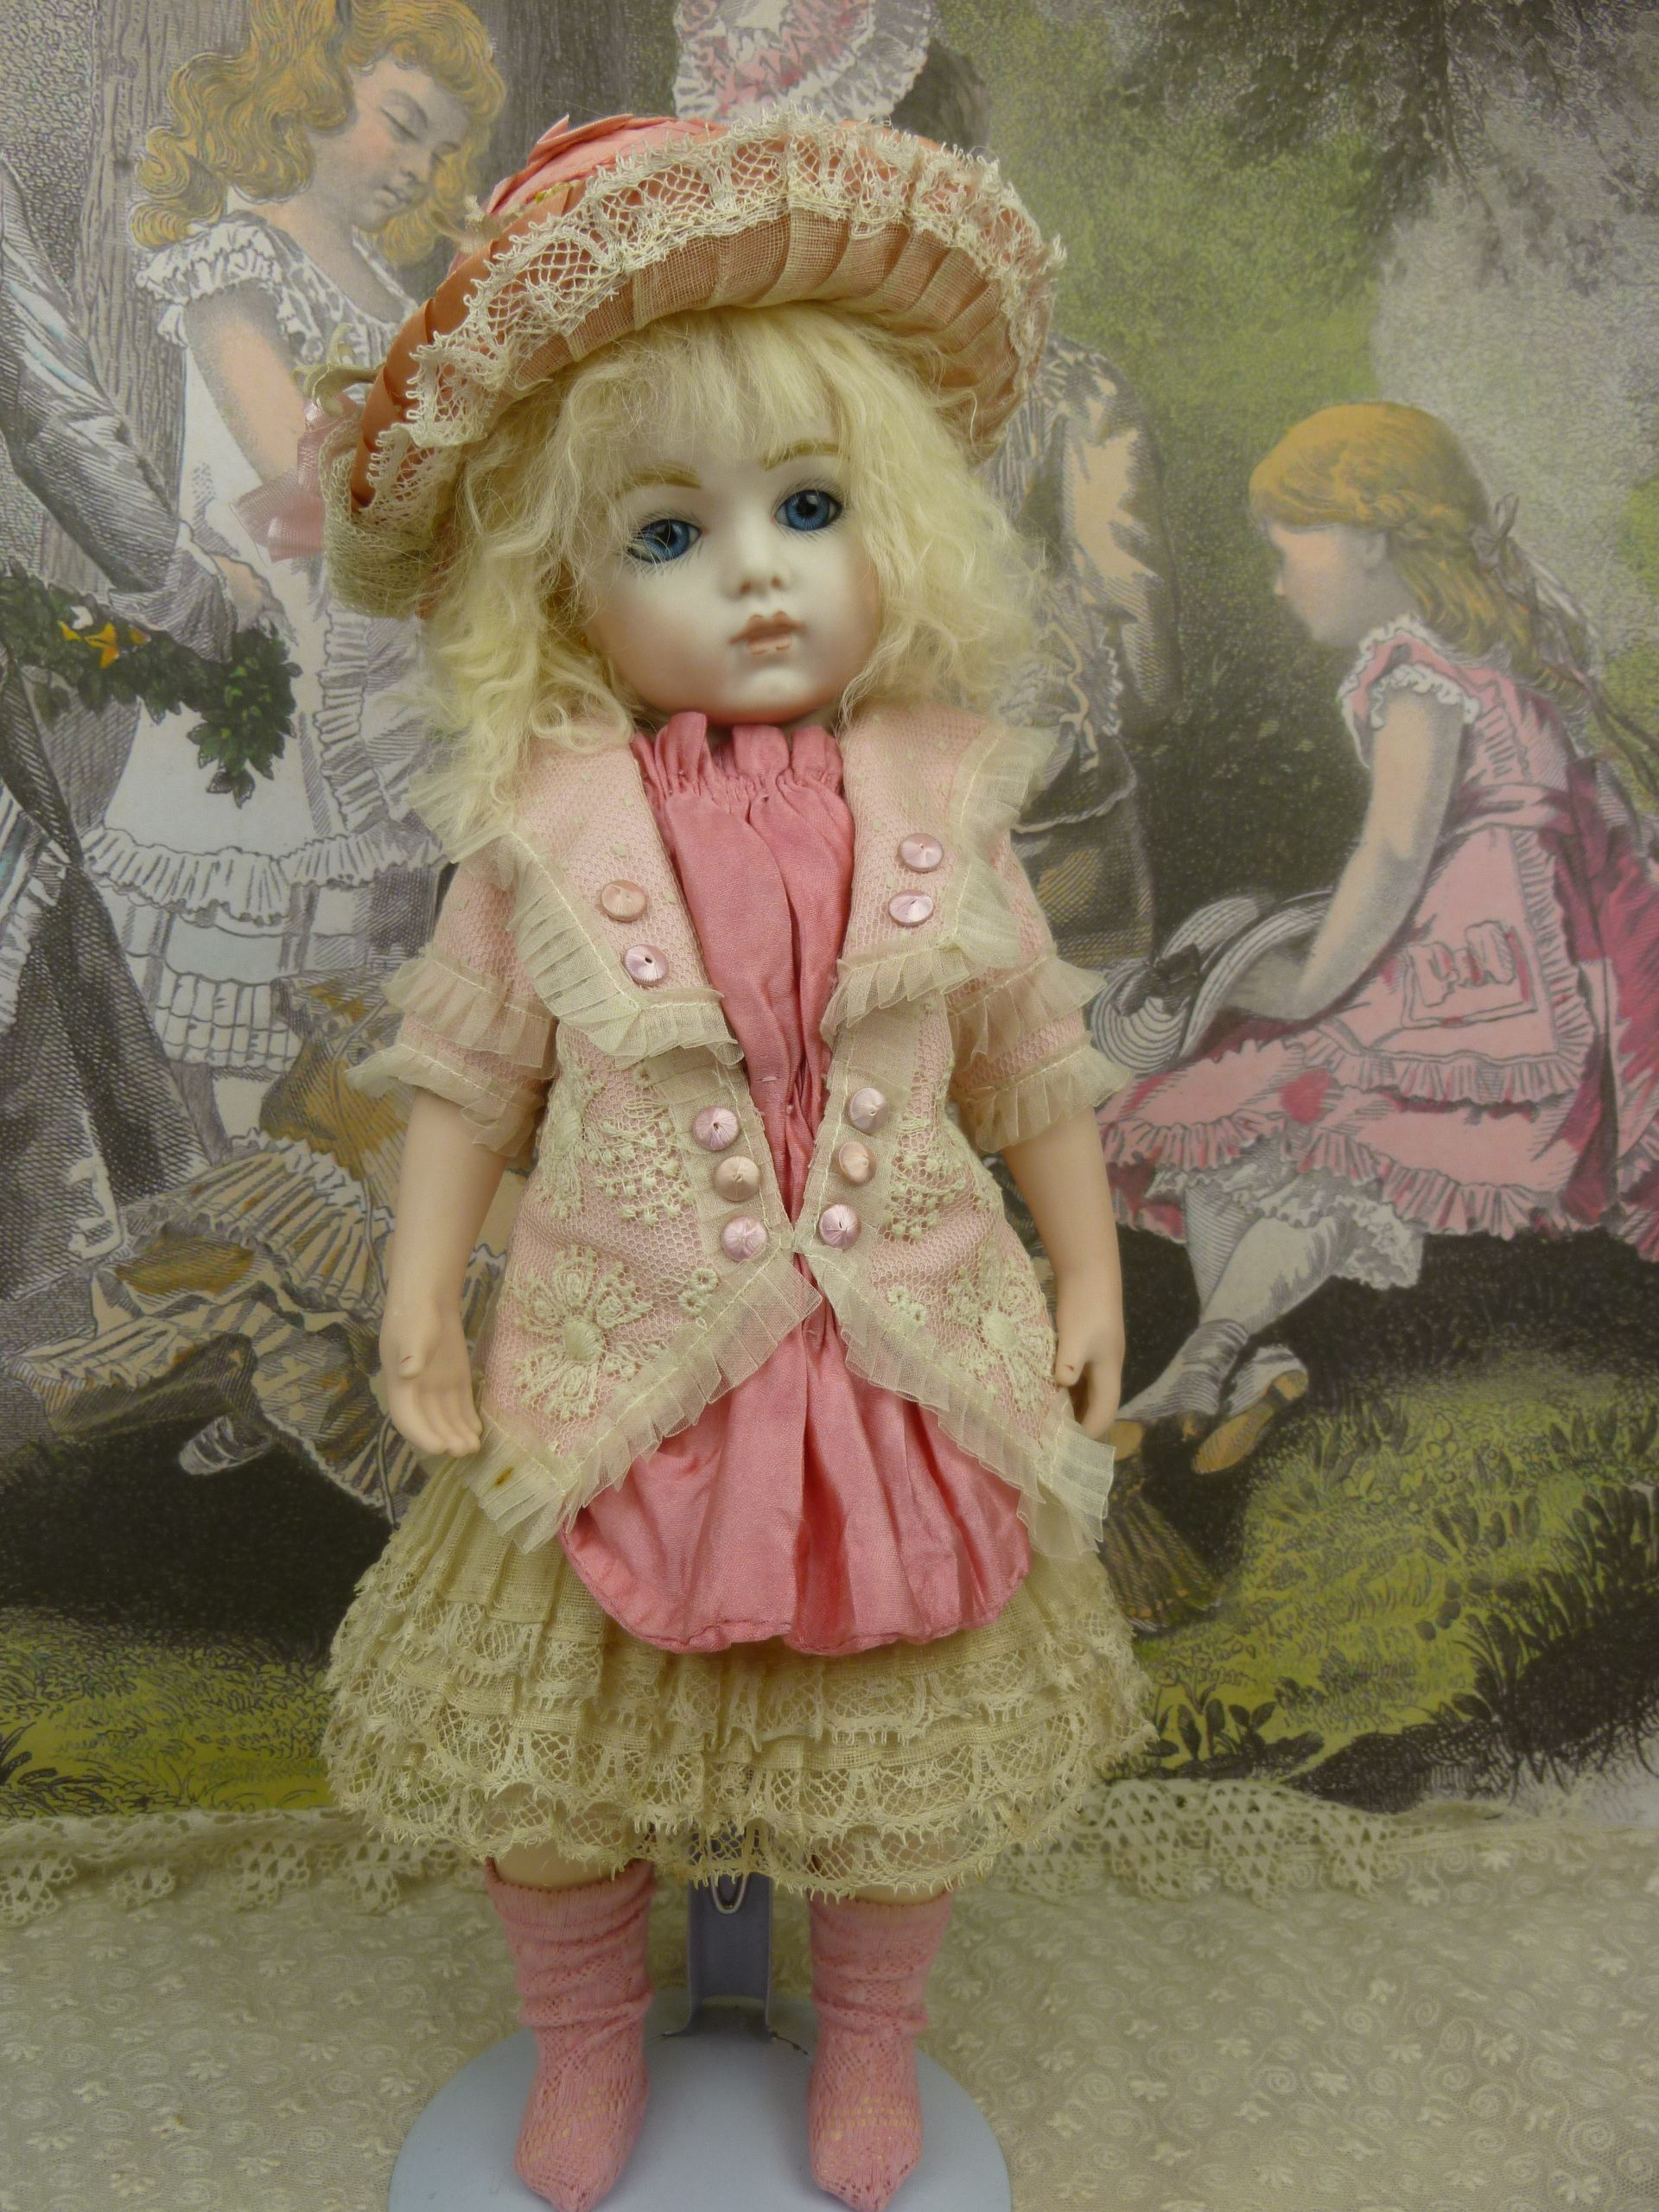 334bc98c1e75 French couturier pink silk, satin and patterned gauze antique dolls dress  with matching pink straw hat and pink open weave socks. A complete ensemble  !!!